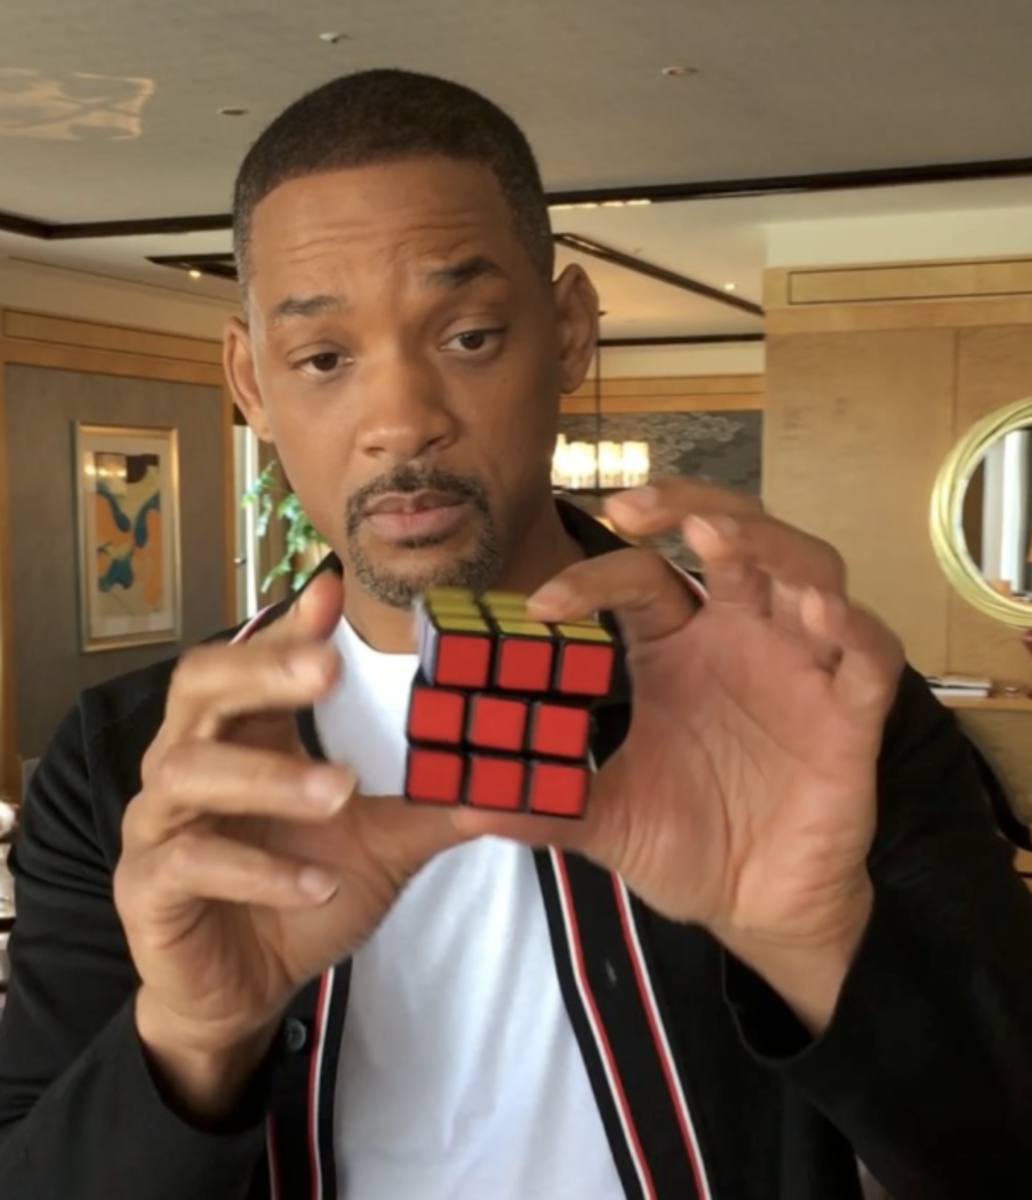 Will Smith with a rubik's cube.